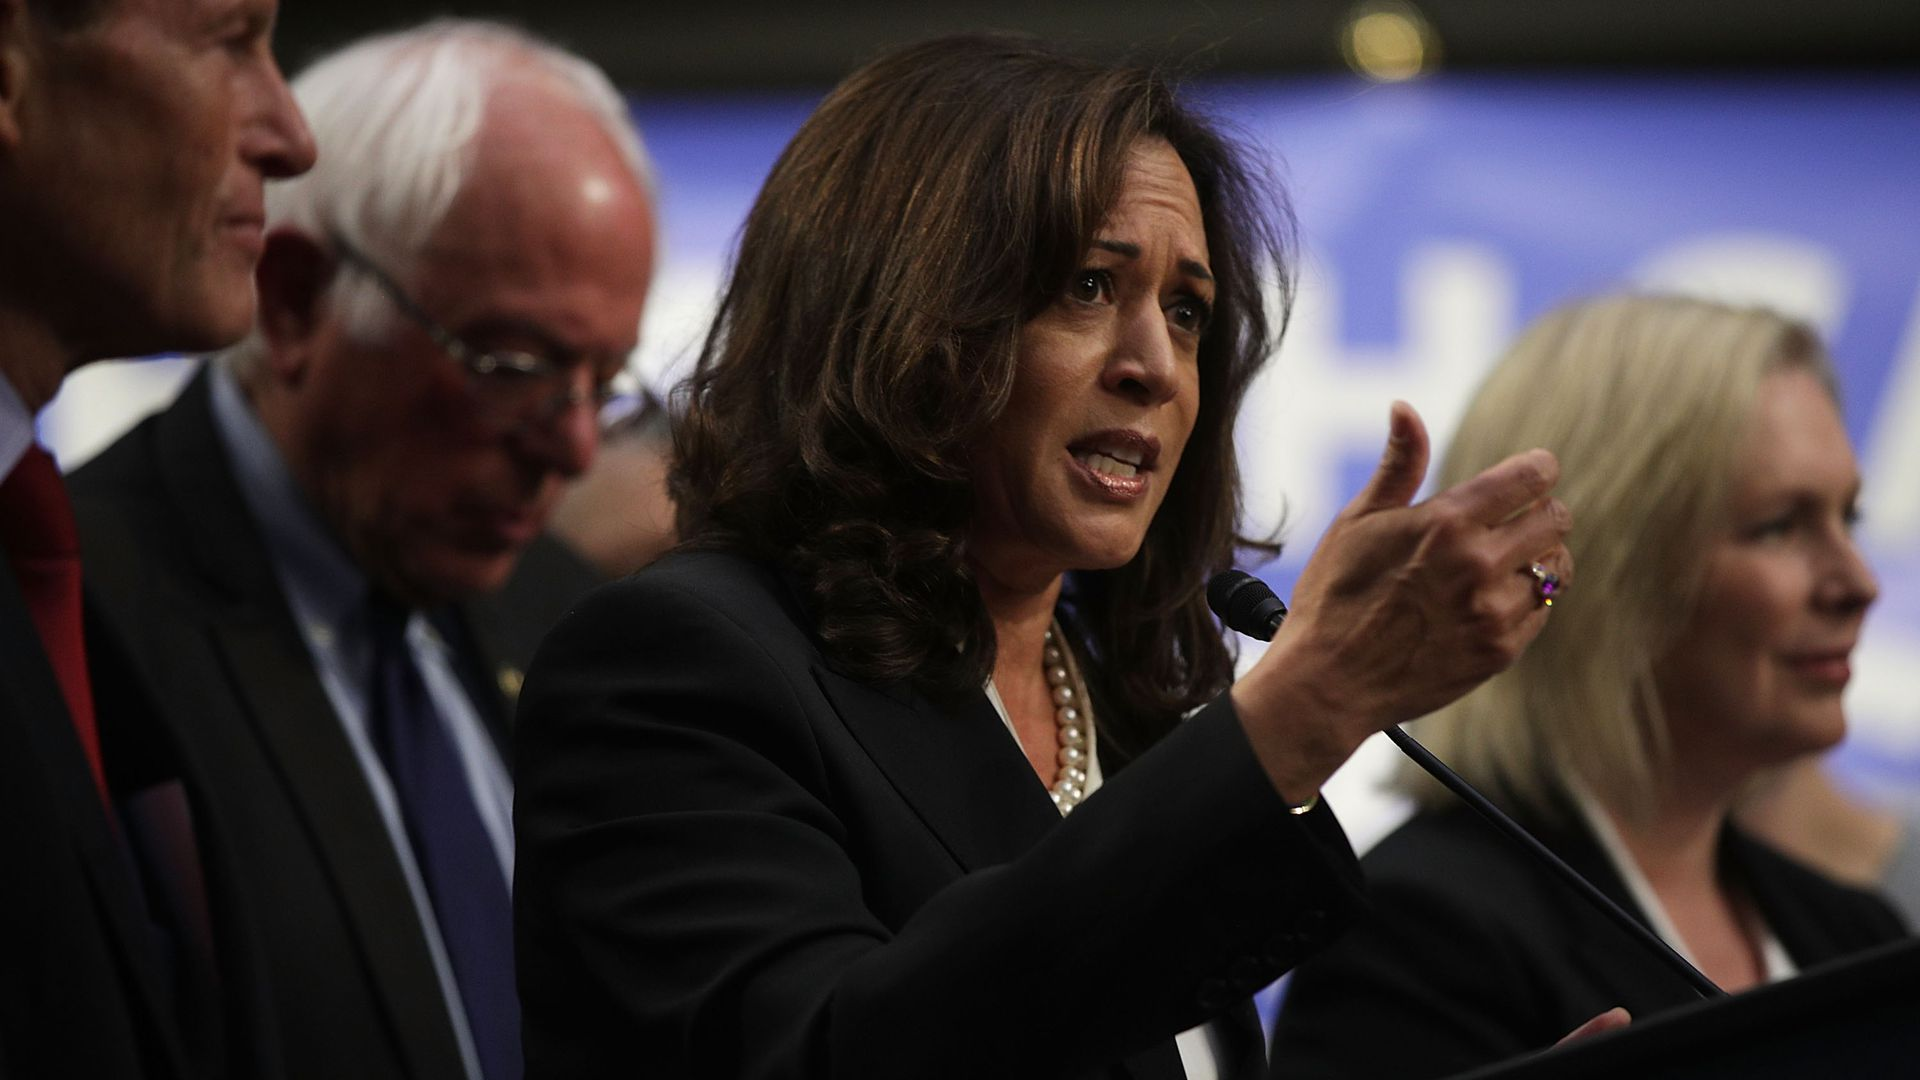 Kamala HArris at podium for medicare for all bill